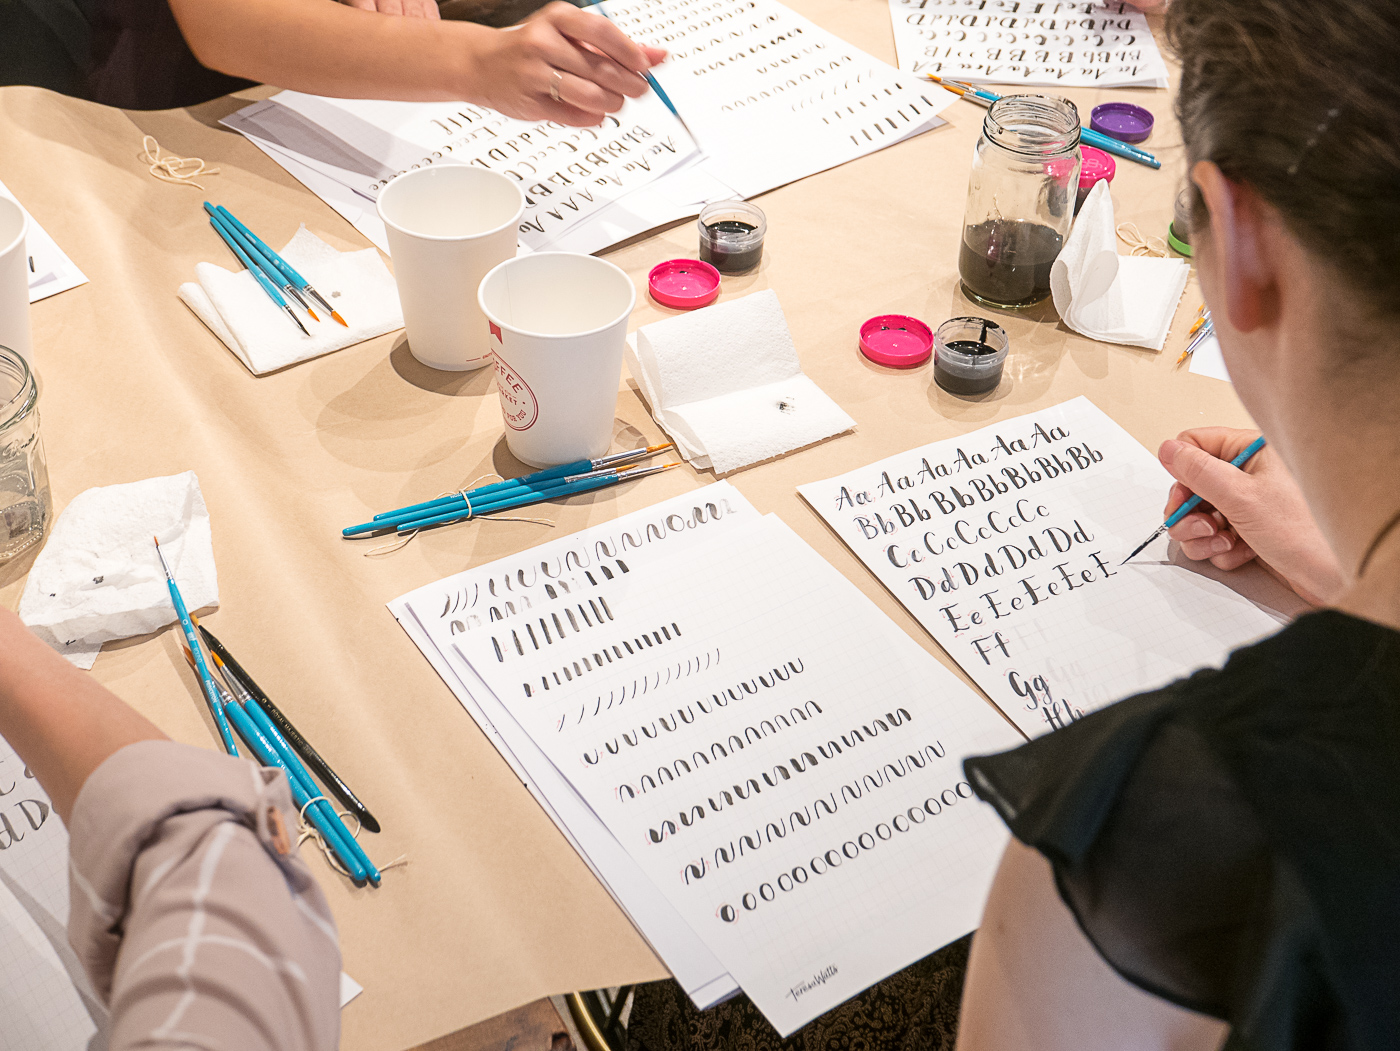 January Brush calligraphy workshop